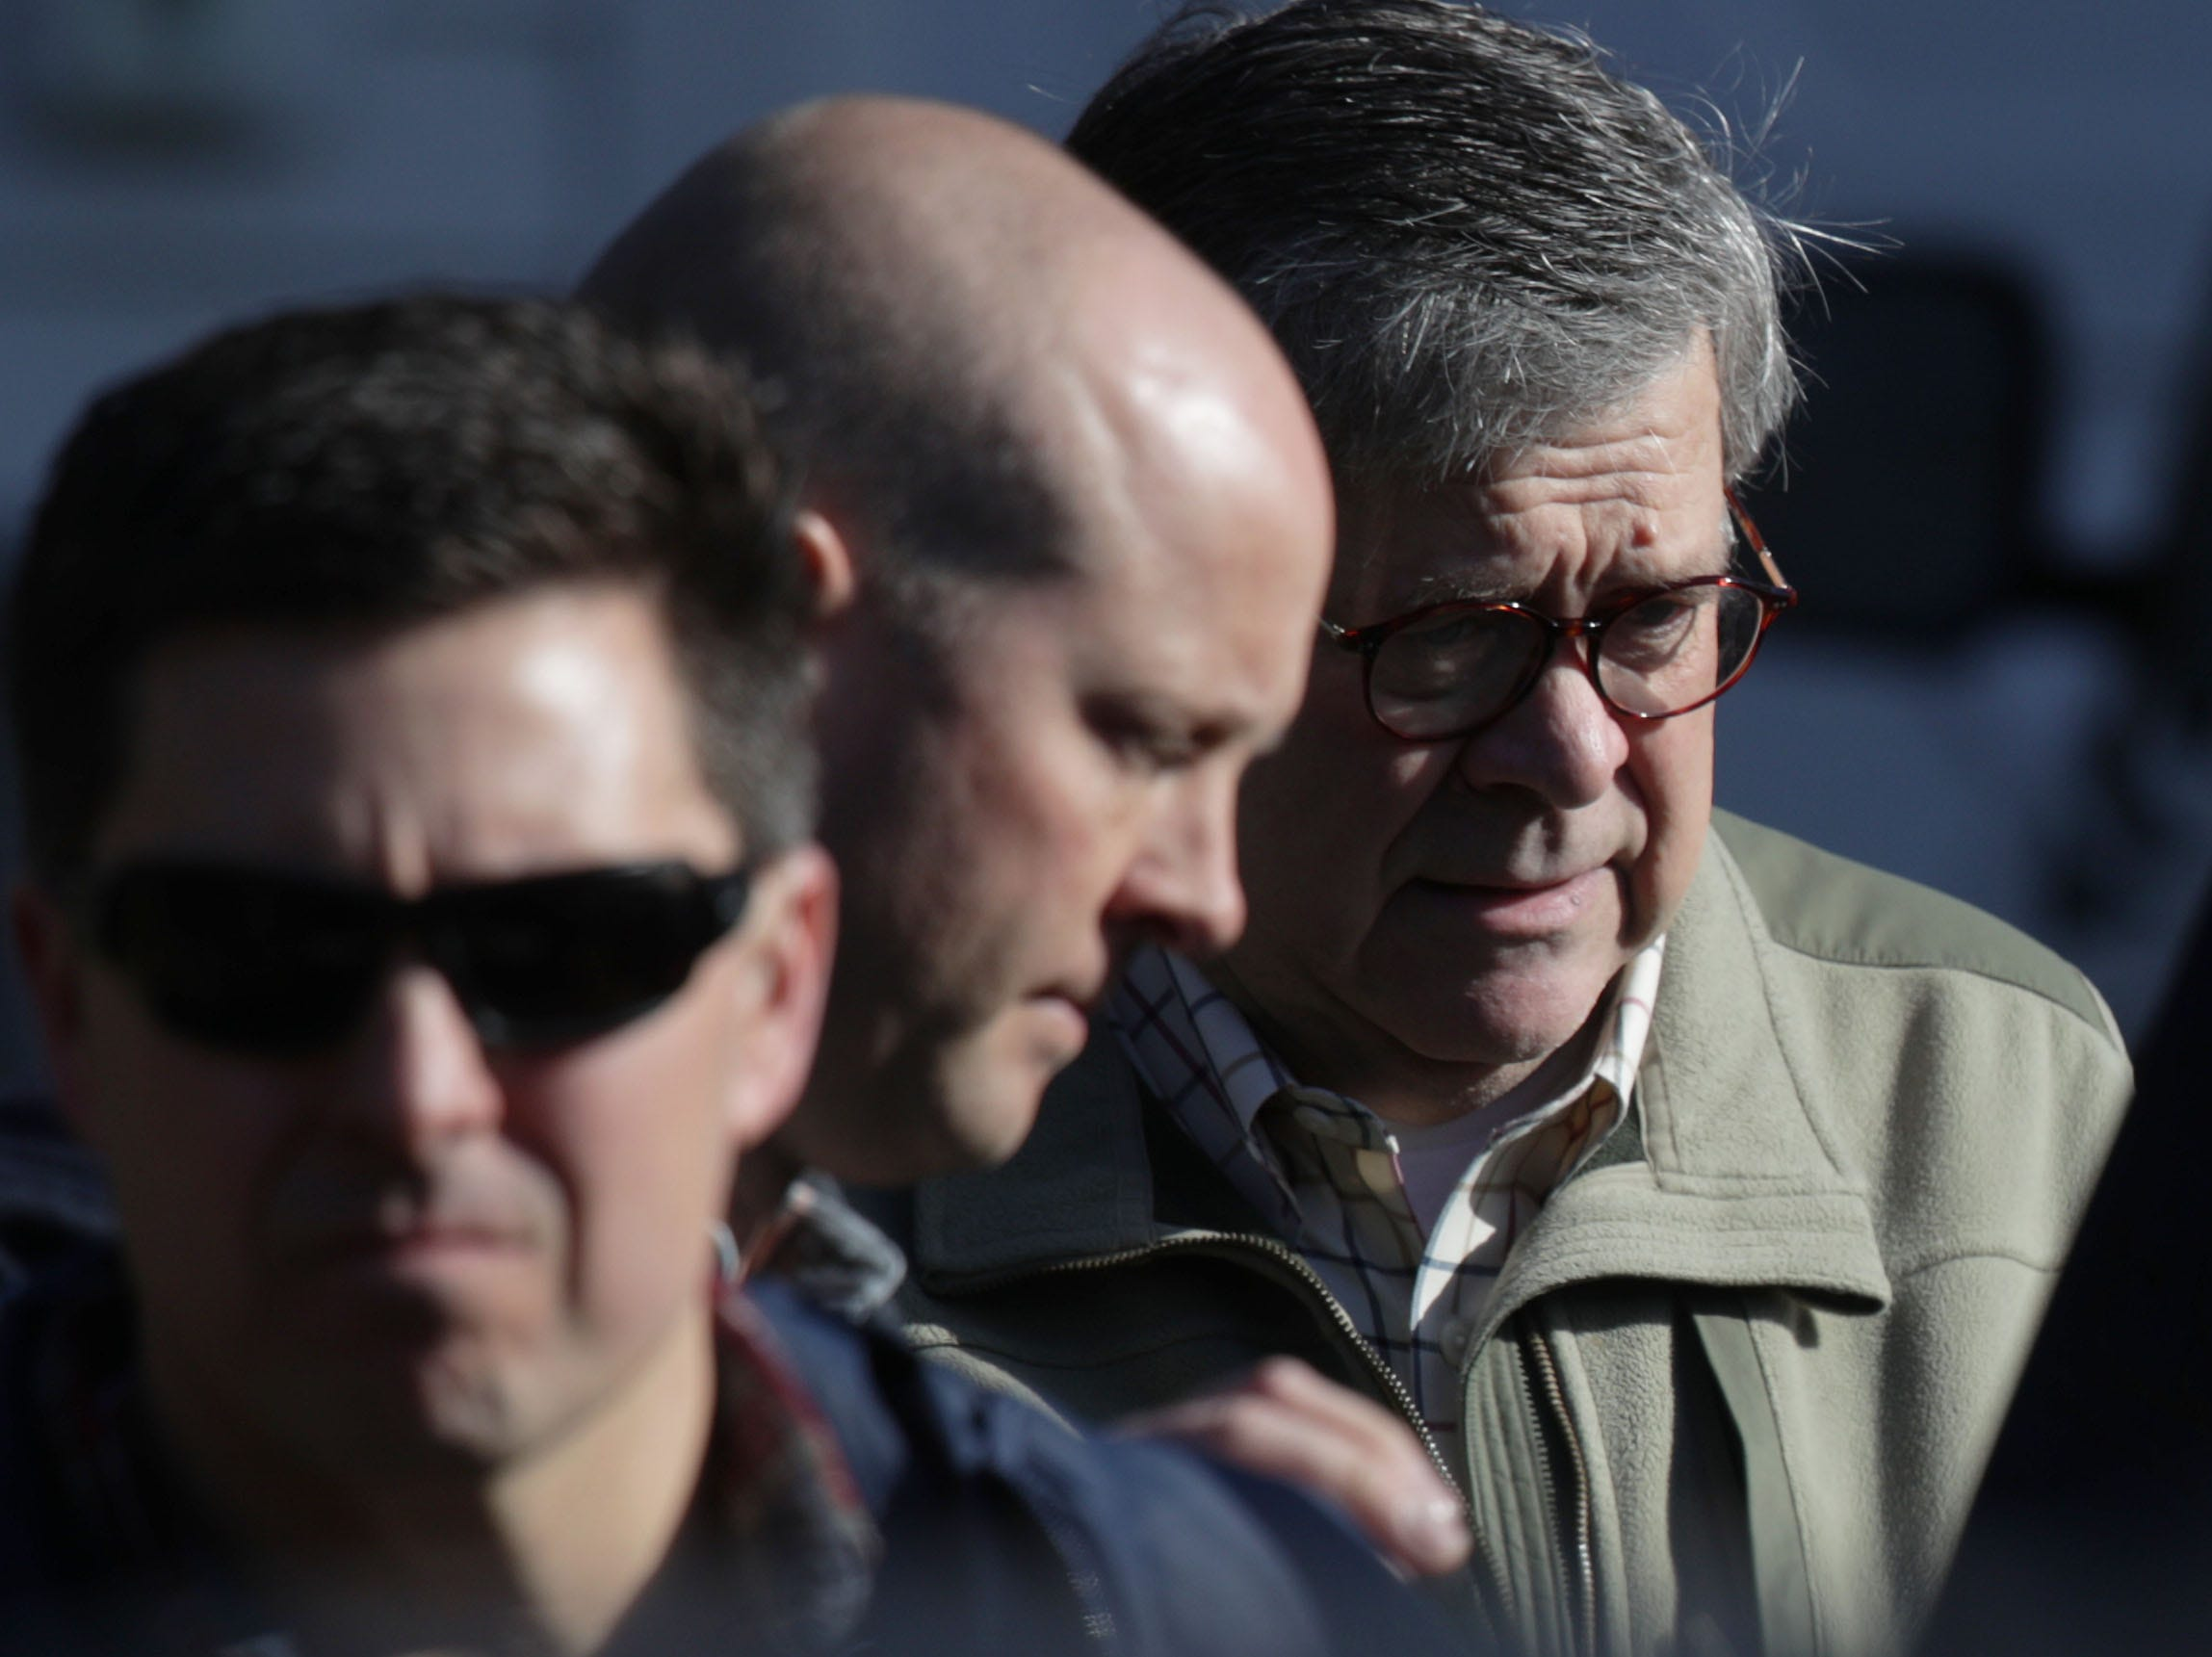 U.S. Attorney General William Barr, right, leaves his house on March 24, 2019 in McLean, Va. Barr continues to review special counsel Robert Mueller's report on alleged Russian meddling in the 2016 presidential election.